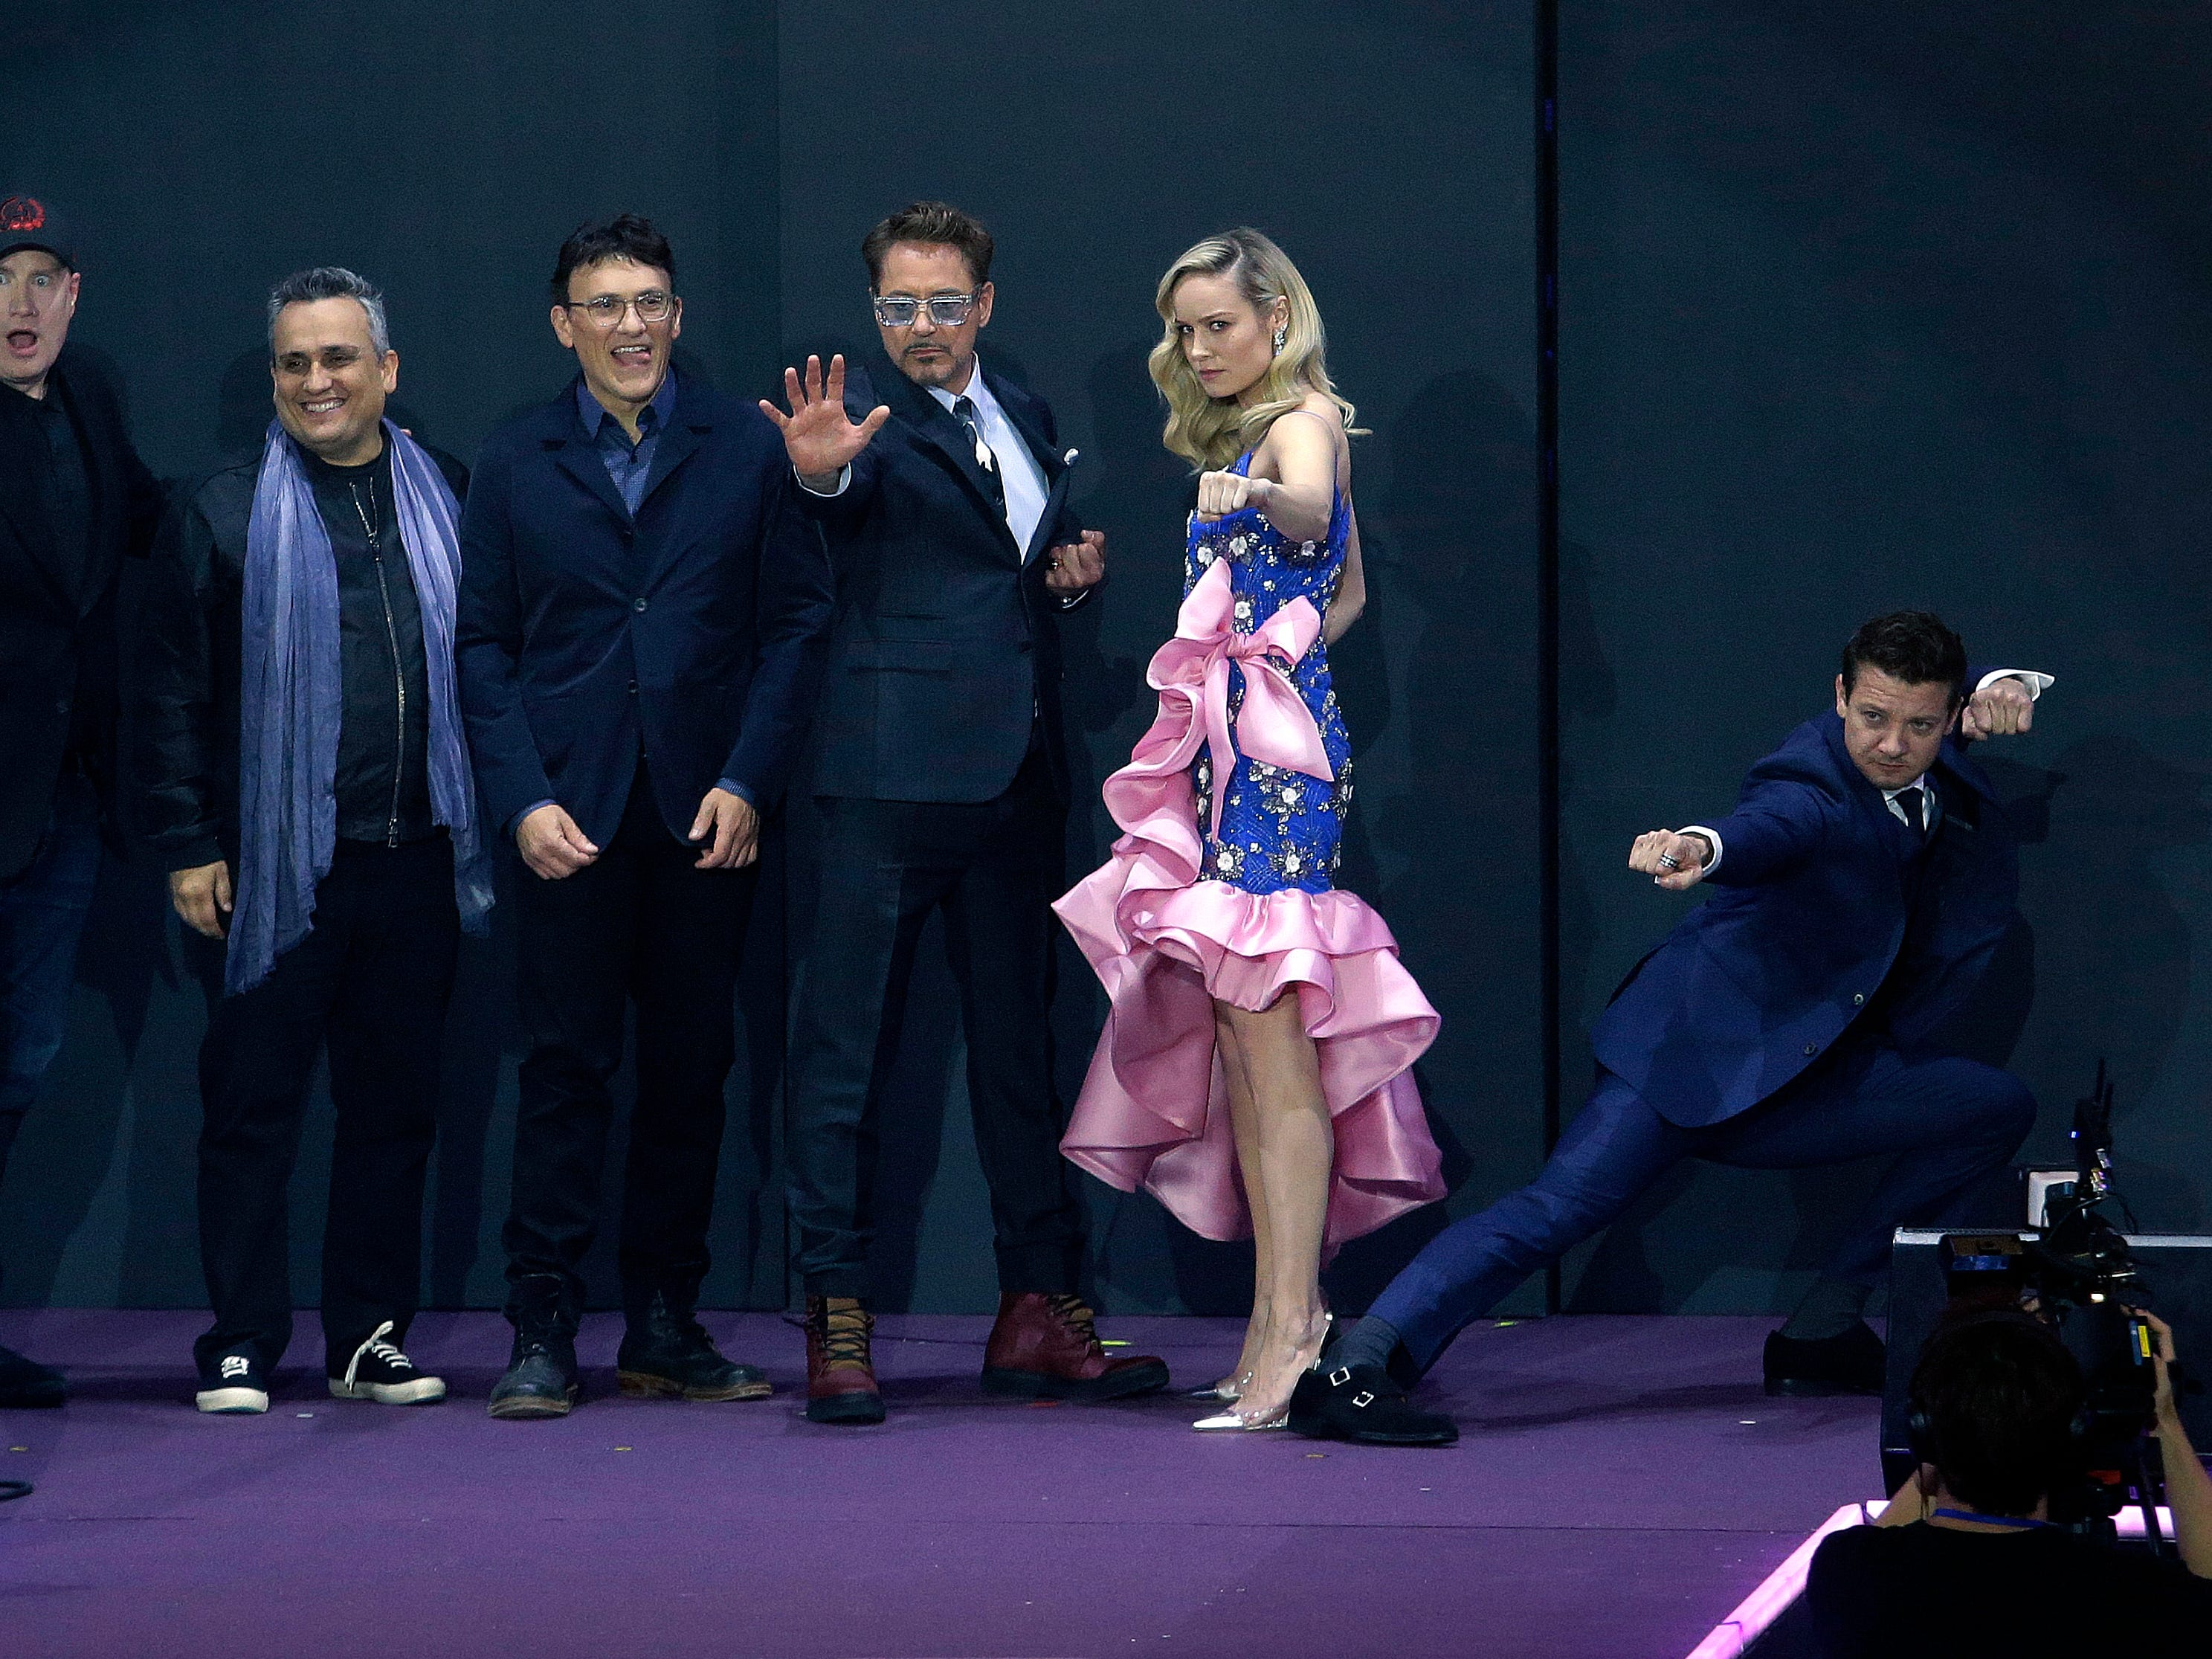 """From right, actor Jeremy Renner, actress Brie Larson, actor Robert Downey Jr., director Anthony Russo, Joe Russo and Kevin Feige, president of Marvel Studios, pose at an event to promote their latest film """"Avengers Endgame"""" in Seoul, South Korea, Monday, April 15, 2019. The movie will open on April 24 in South Korea."""